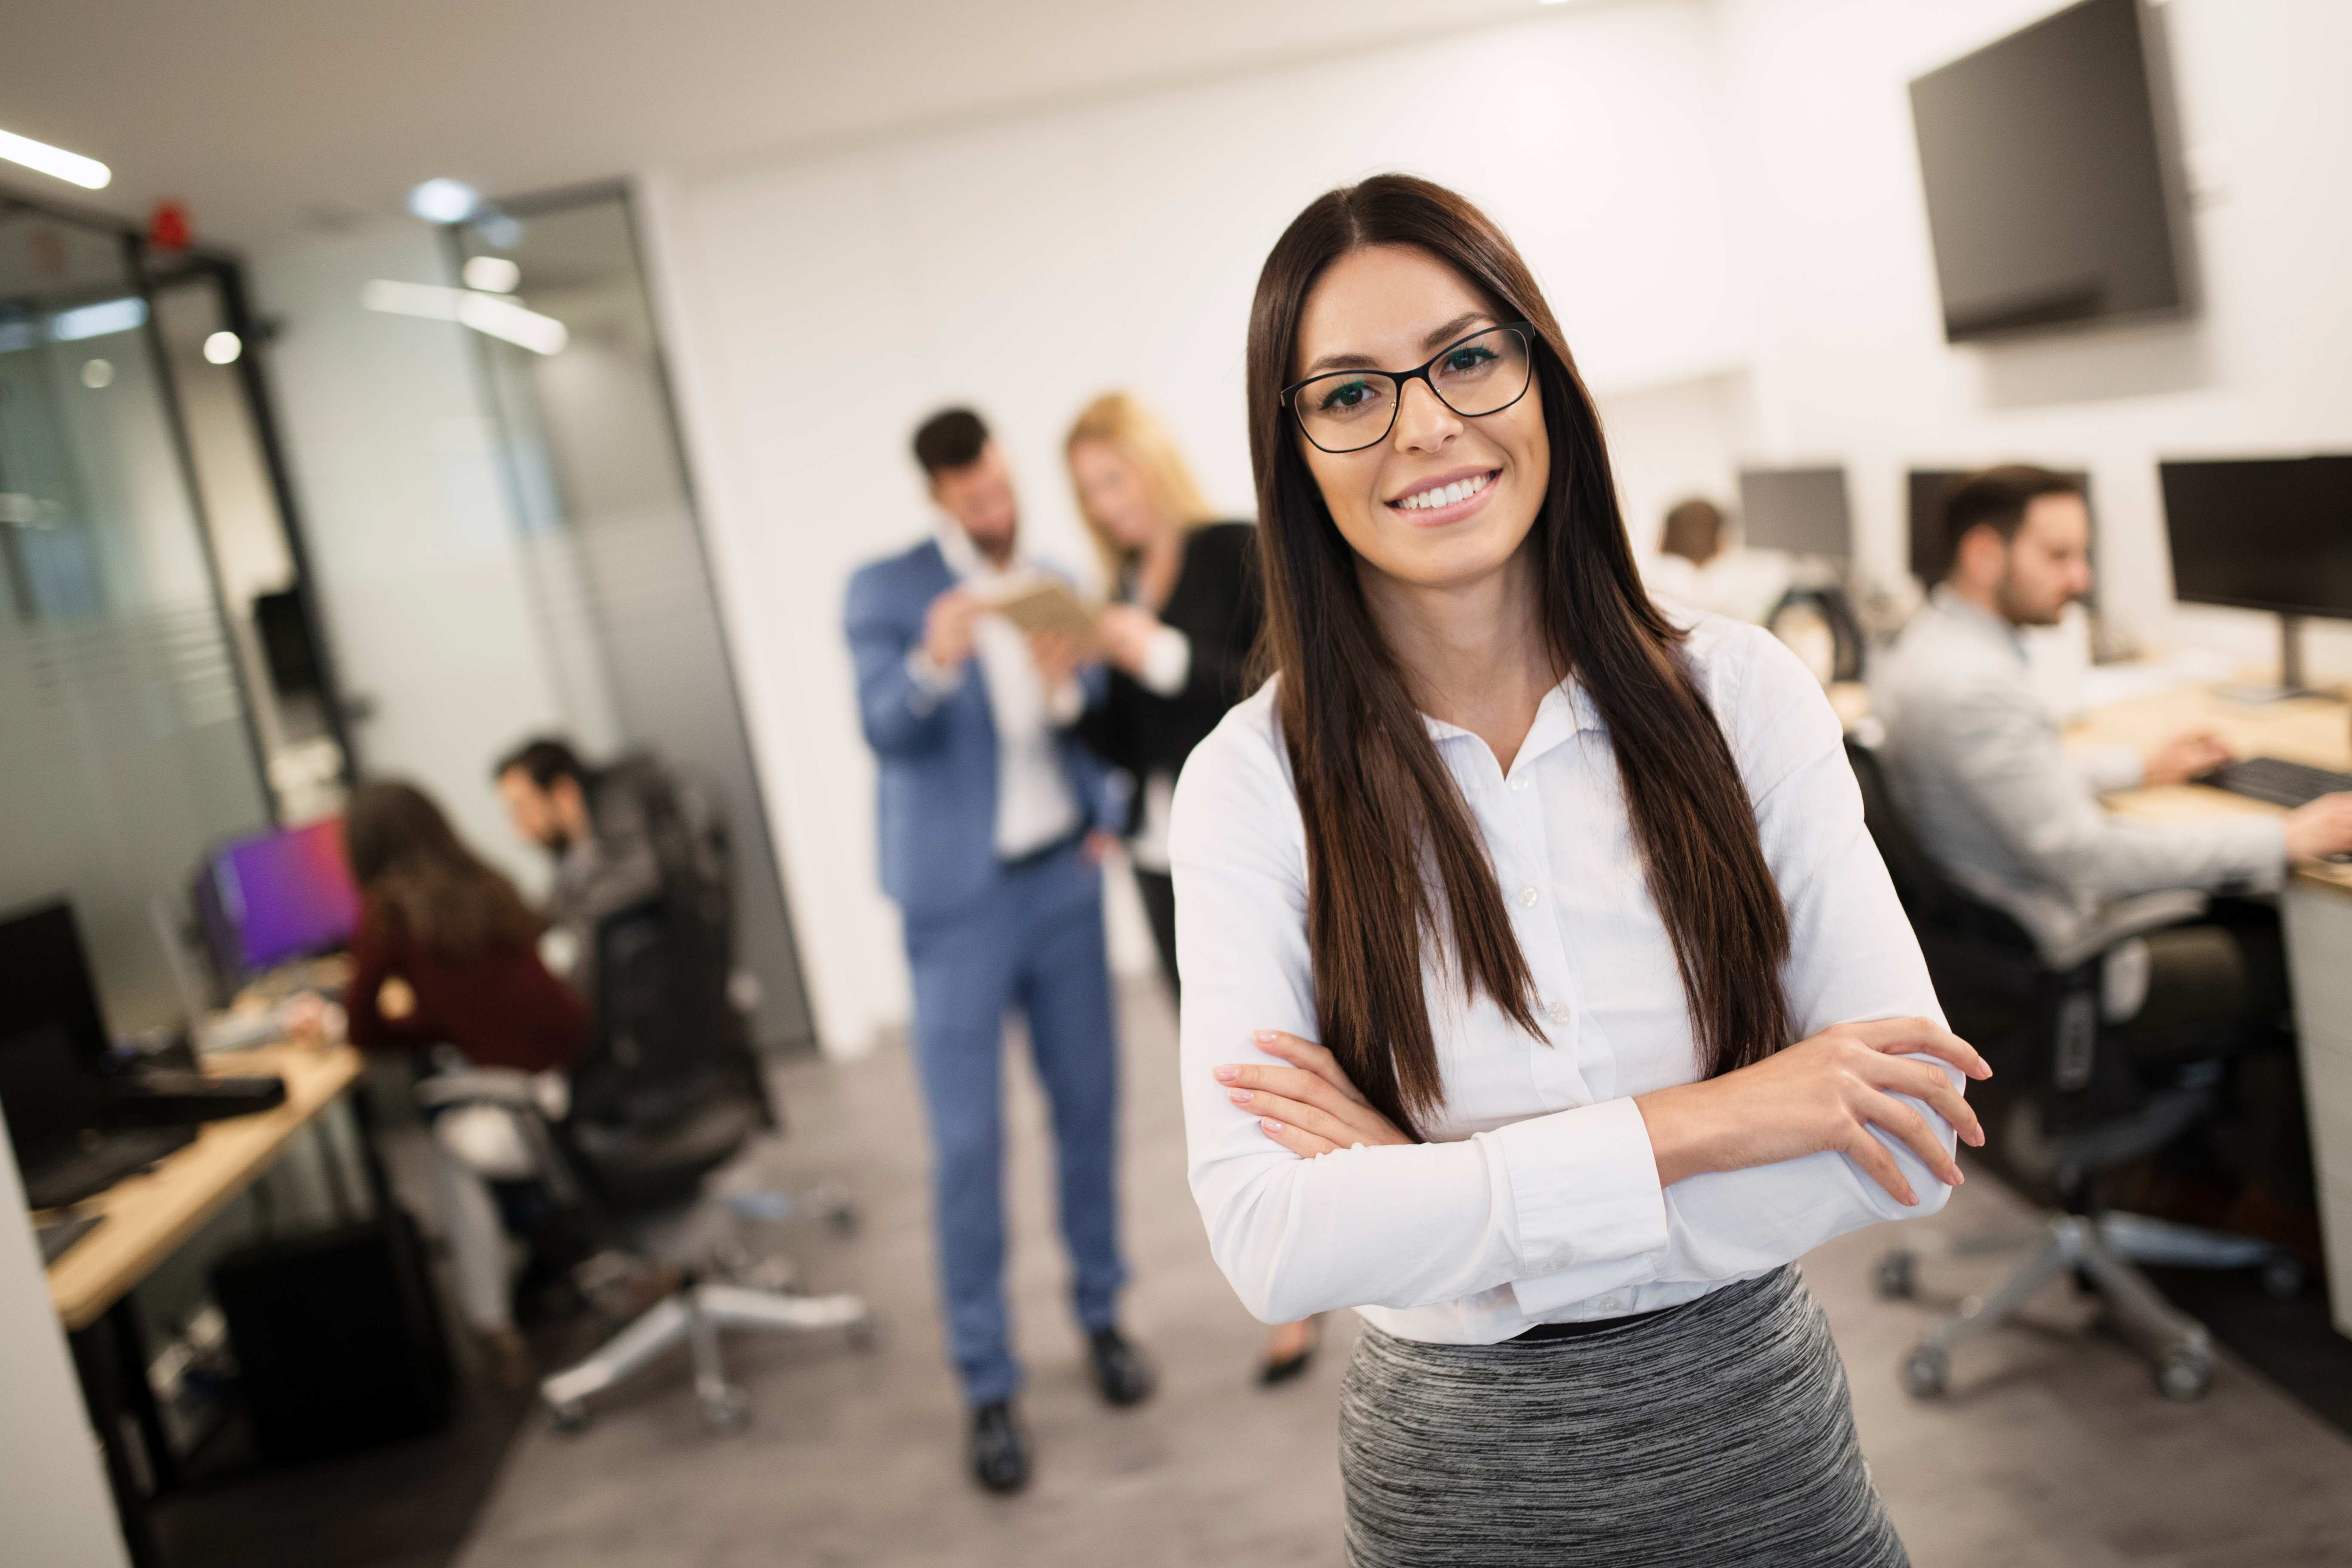 businesswoman-posing-while-other-businesspeople-ta-3uc76n8